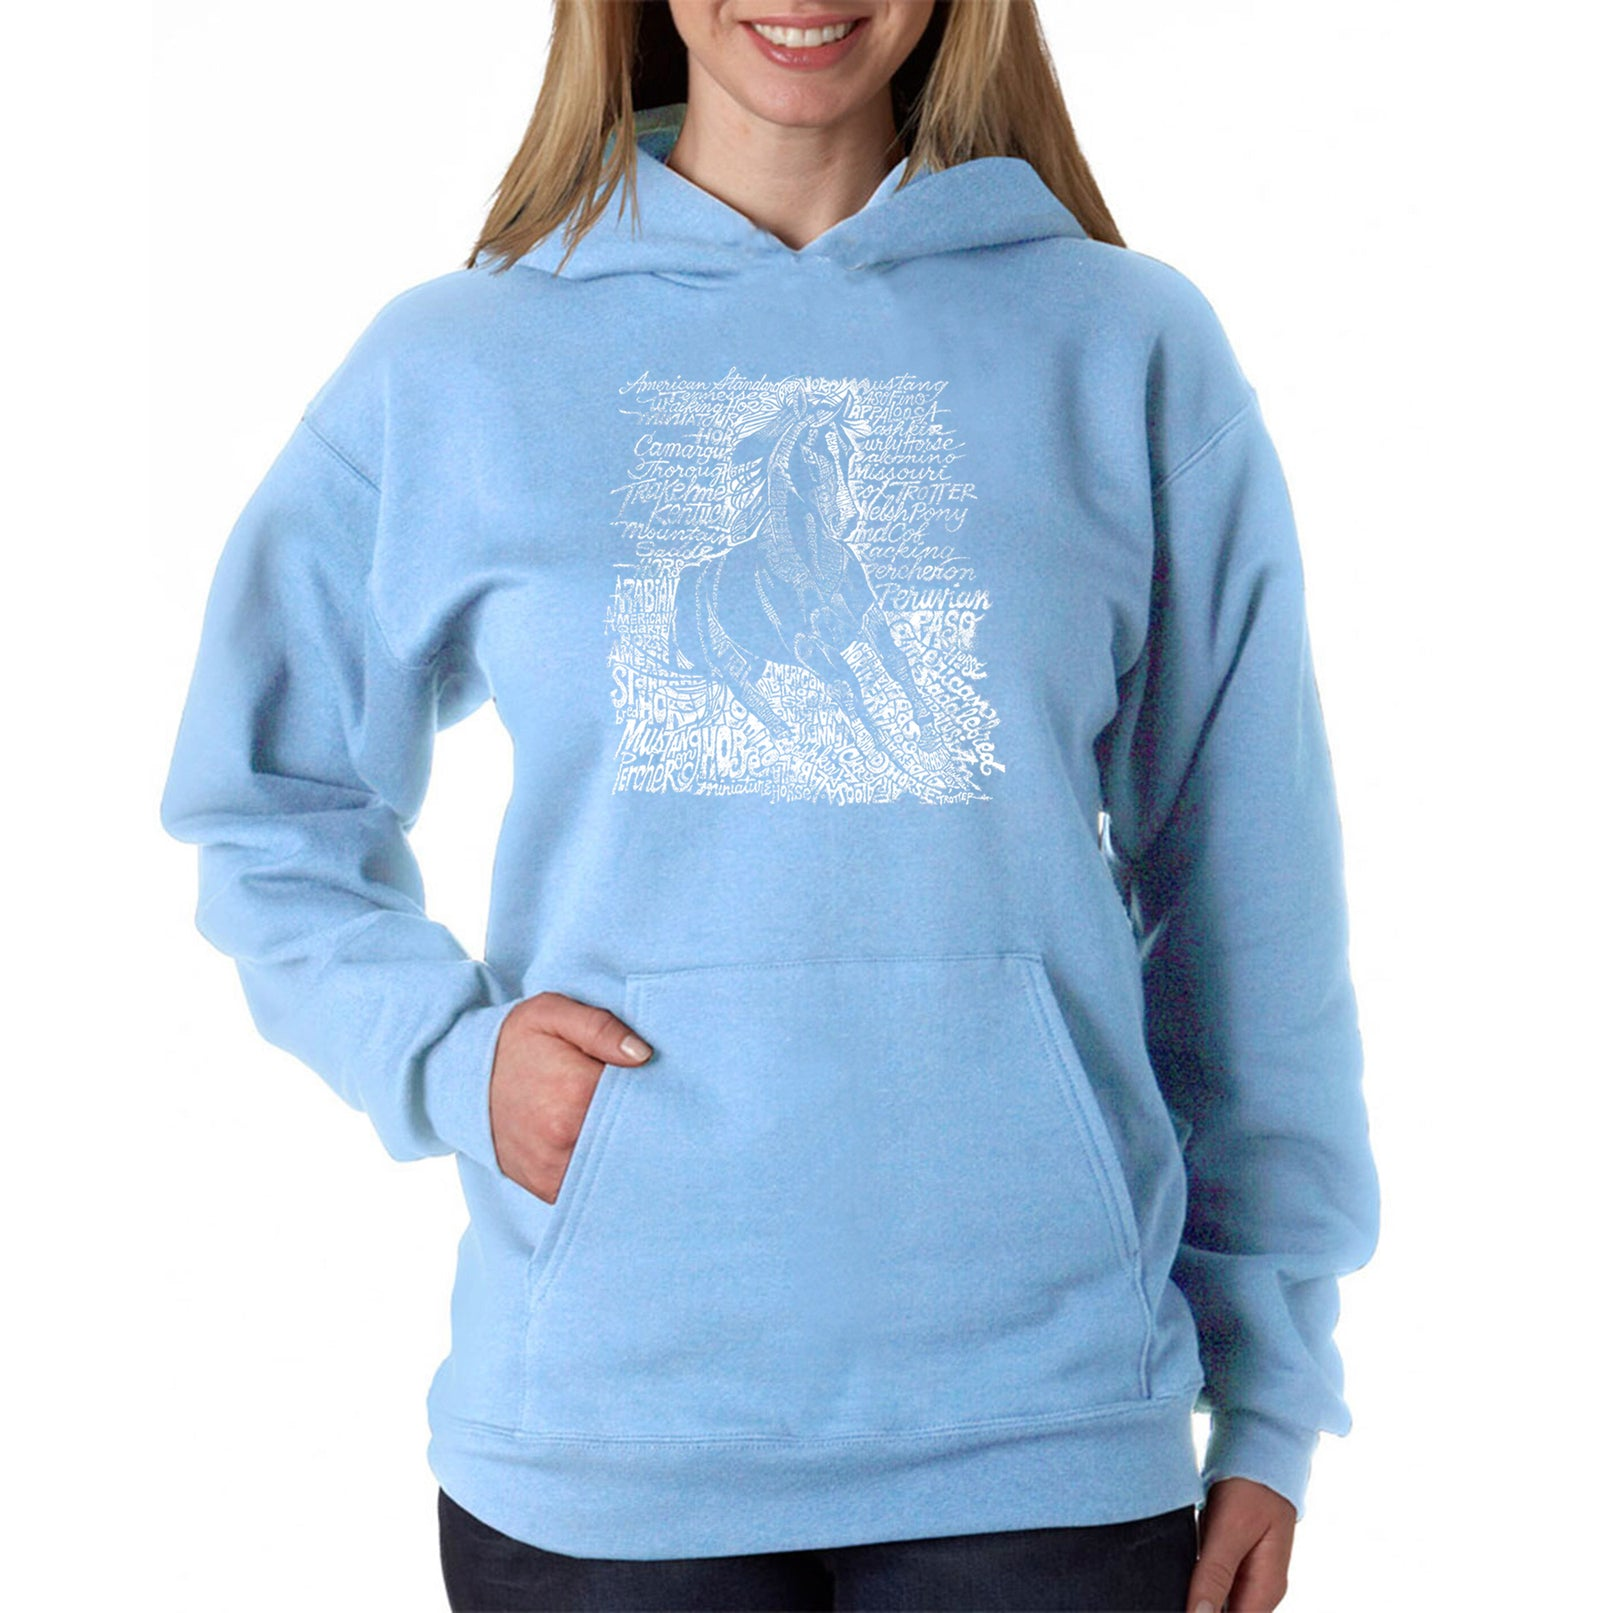 Women's Hooded Sweatshirt -POPULAR HORSE BREEDS